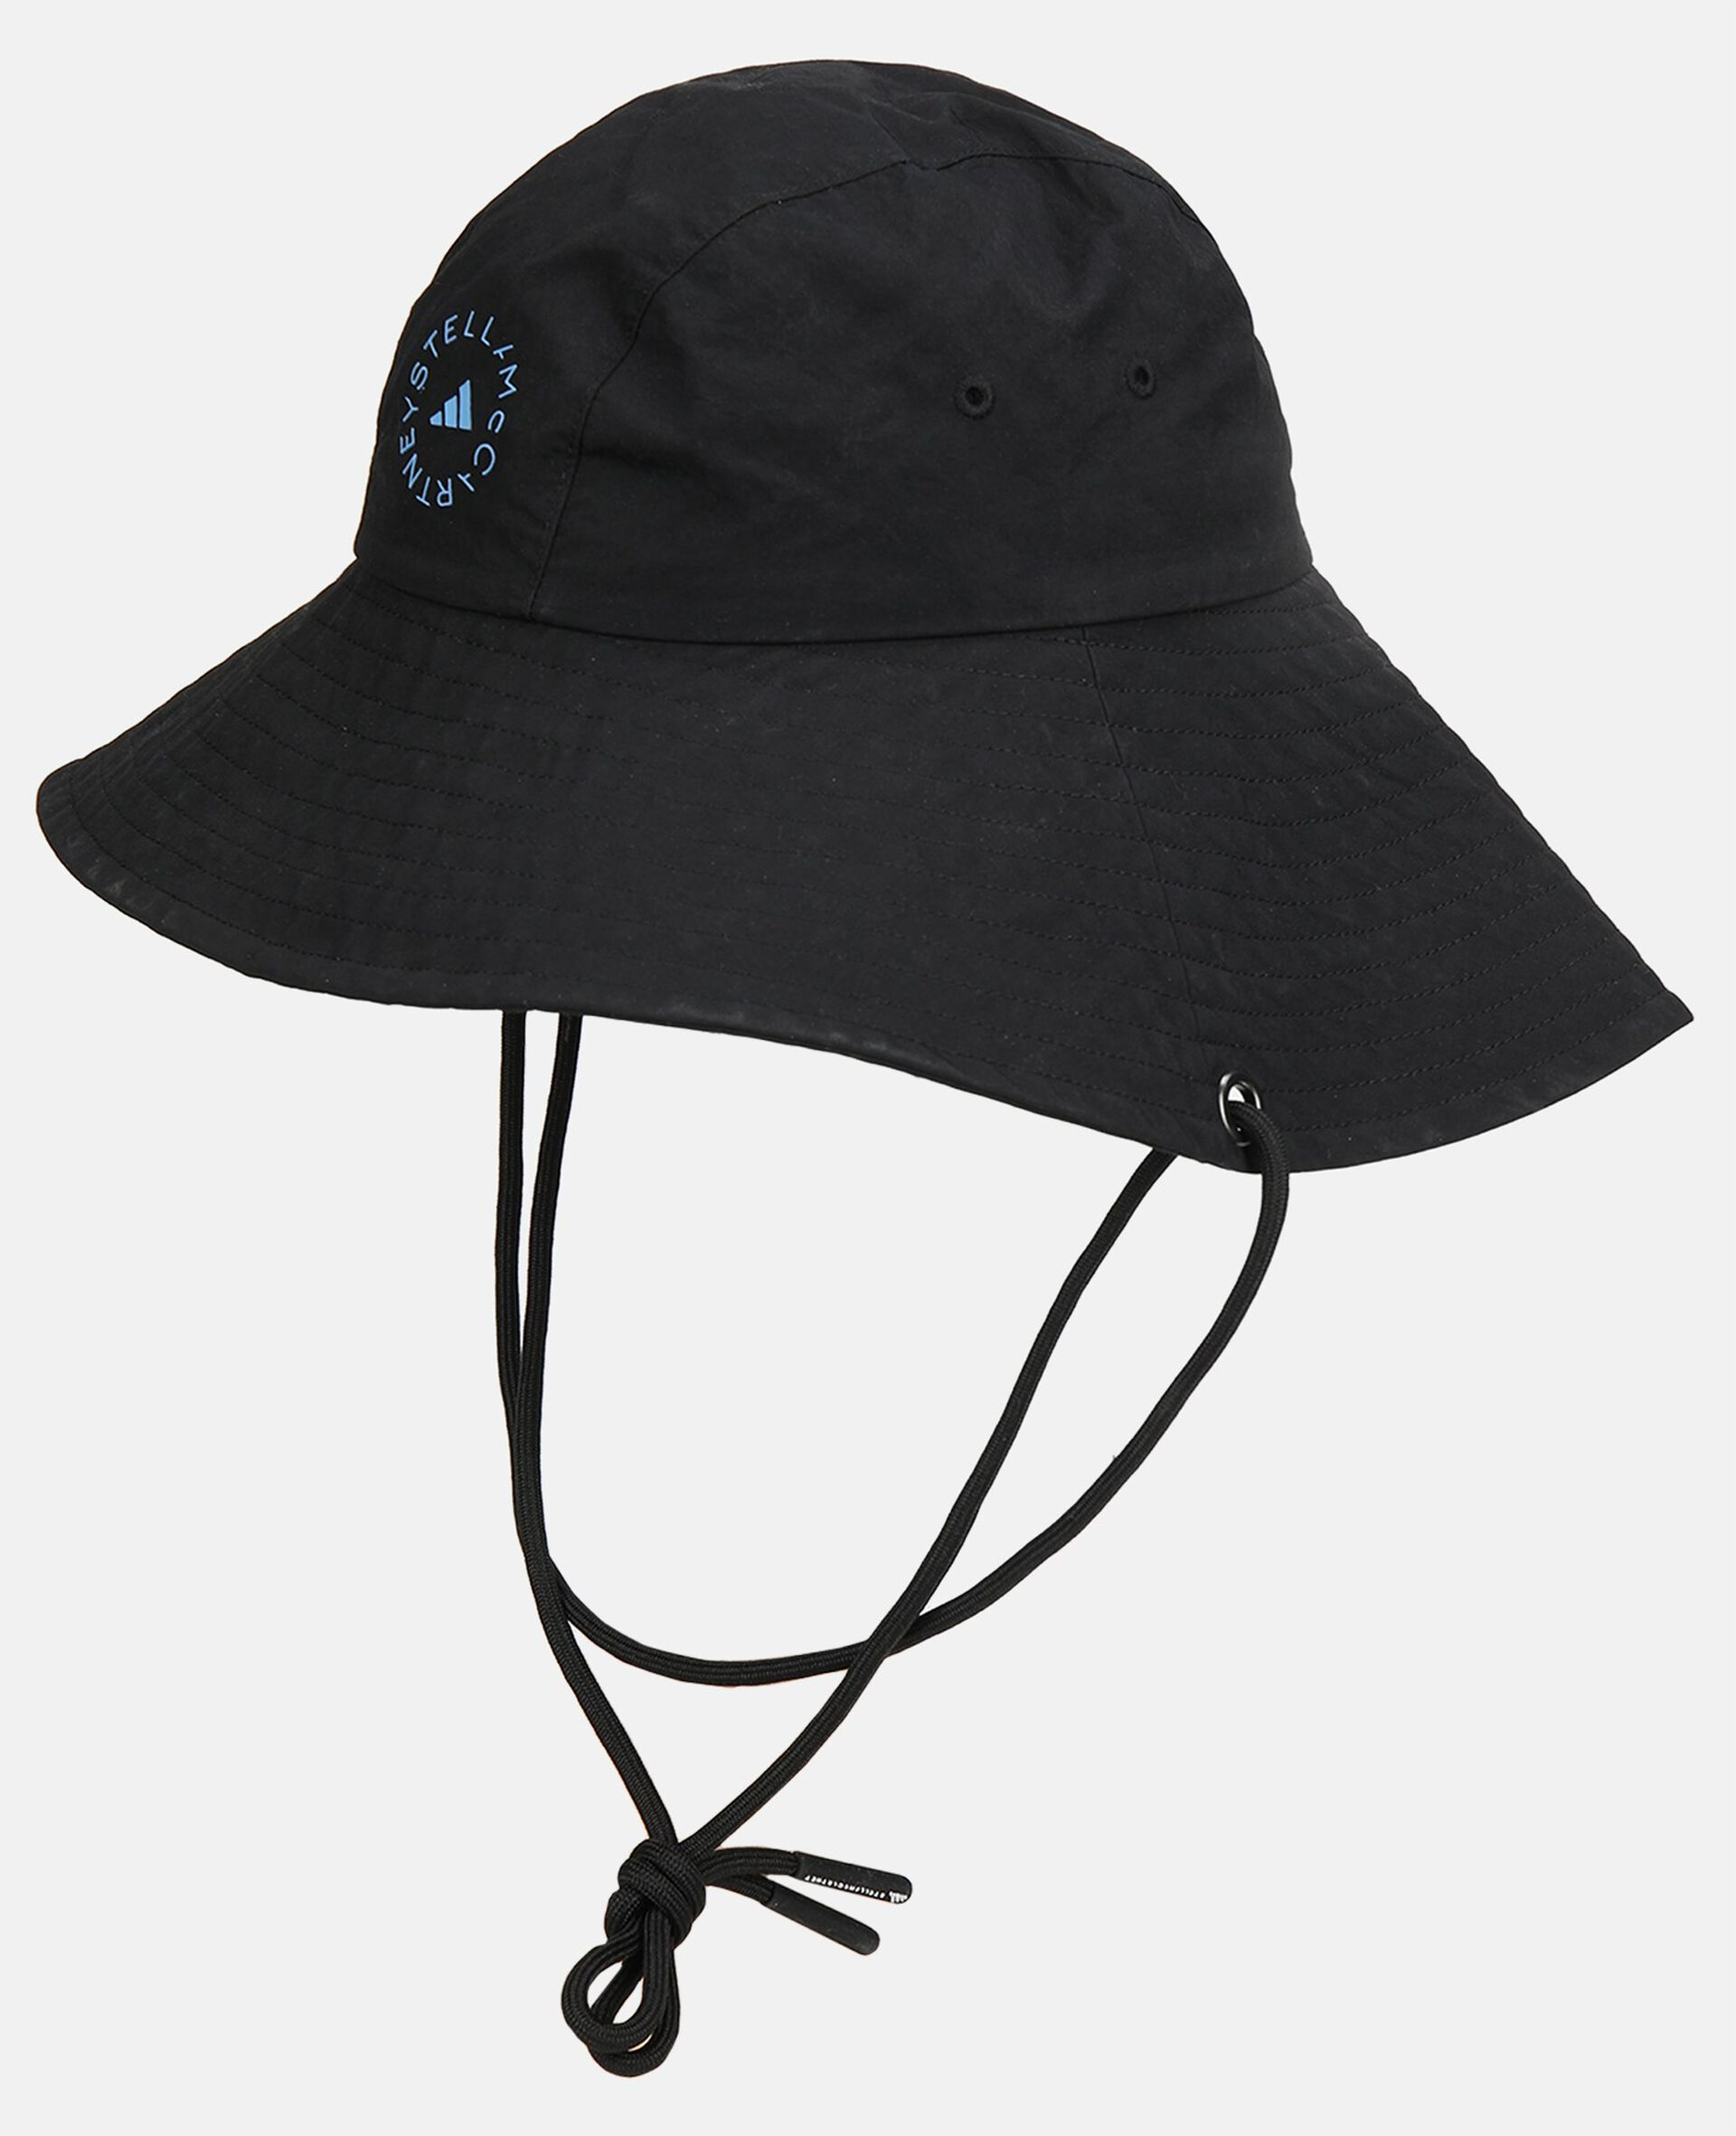 Black Bucket Hat -Black-large image number 0